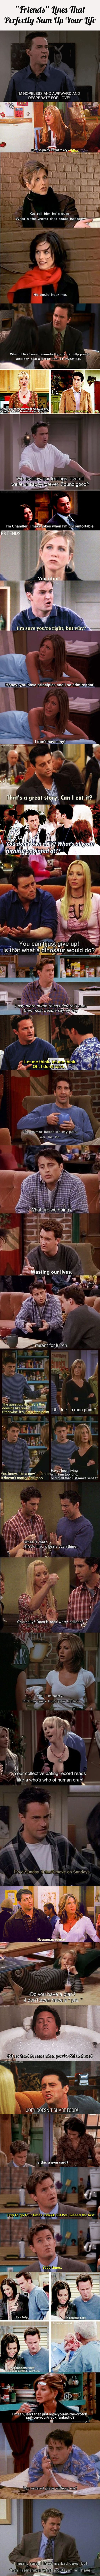 "35 ""Friends"" Quotes That Perfectly Sum Up Your Life"